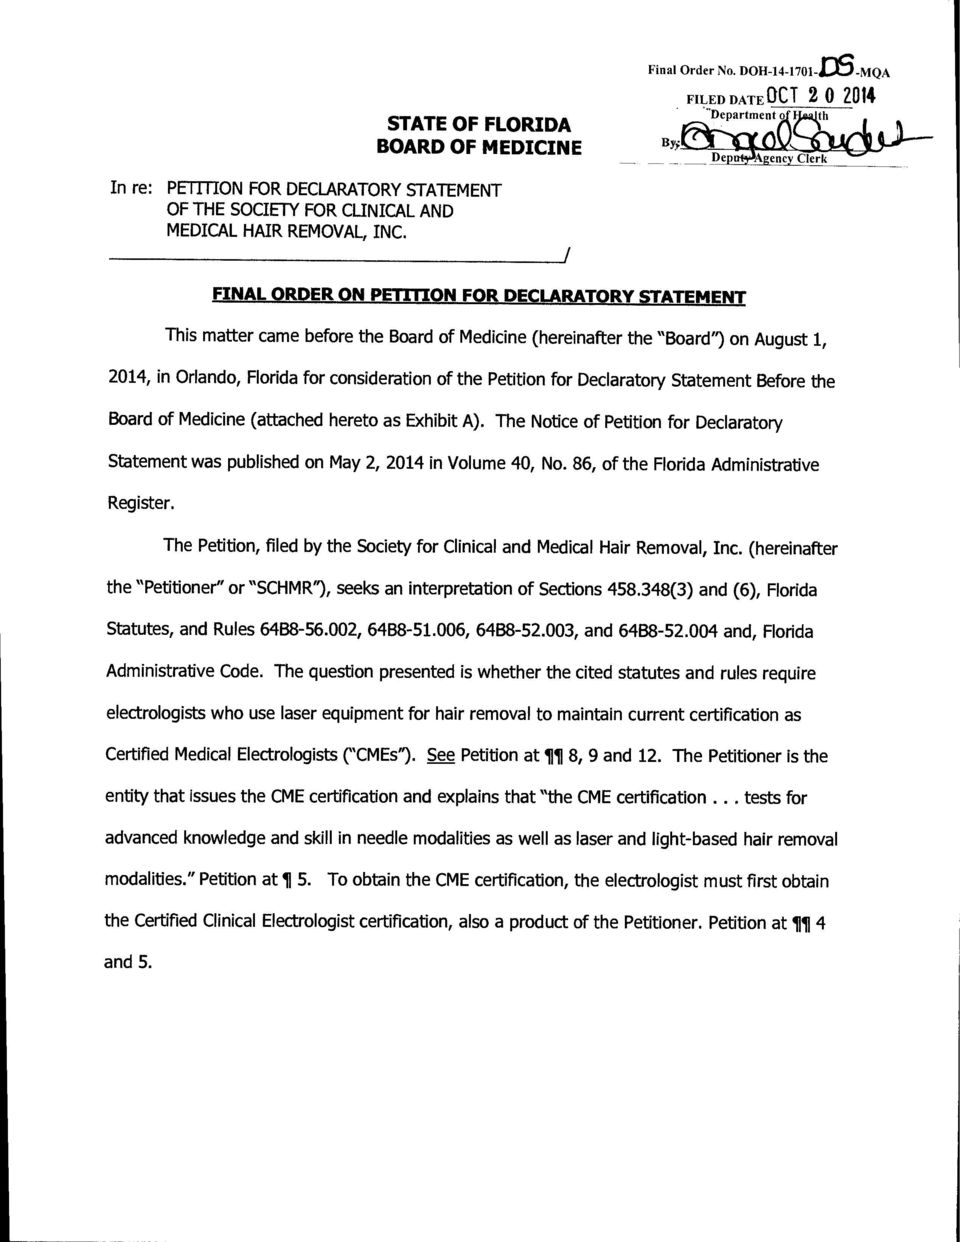 State Of Florida Board Of Medicine Final Order On Petition For